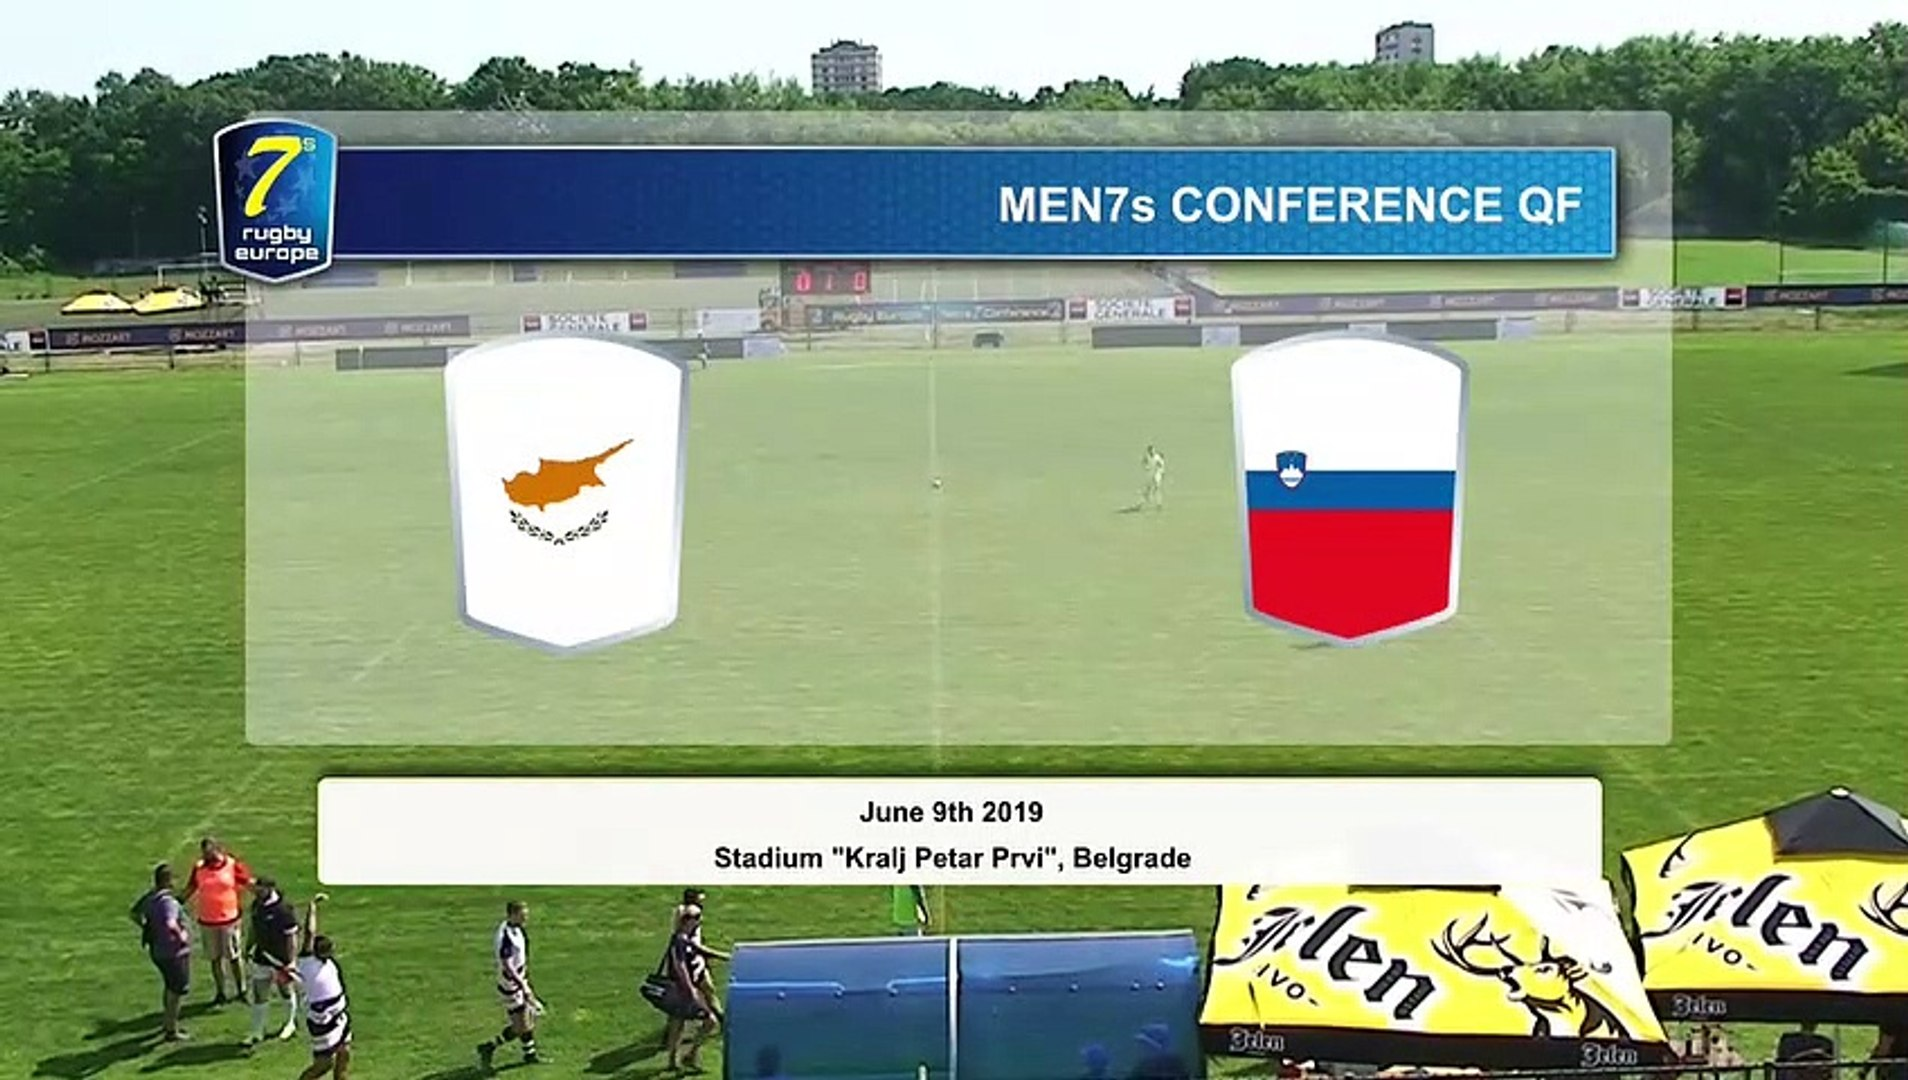 REPLAY QUARTER FINALS - DAY 2 - RUGBY EUROPE MEN 7s CONFERENCE 2019 - BELGRADE 2019 (4)